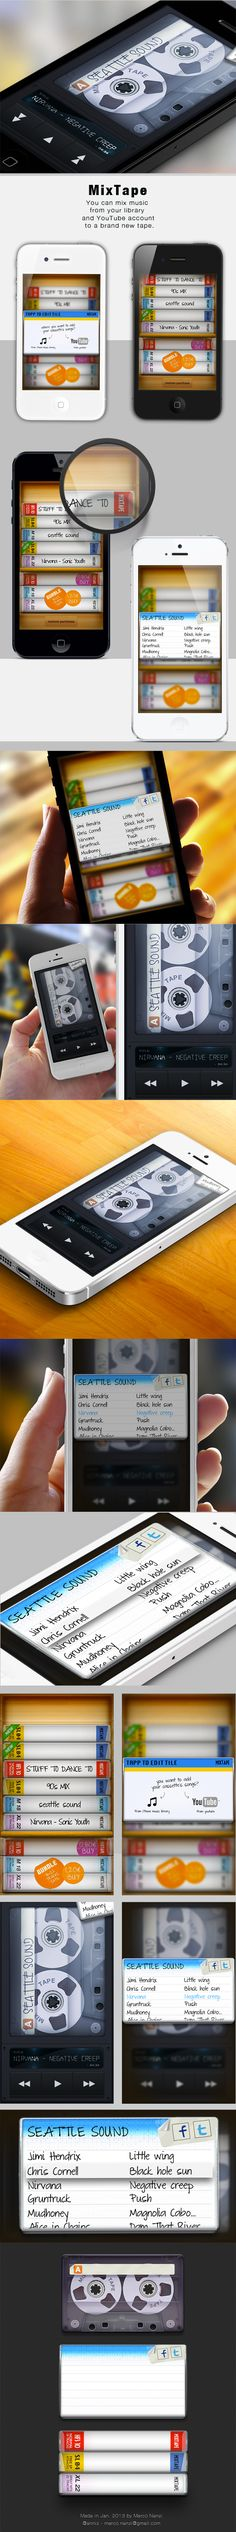 MixTape - iOS Music App - on Behance